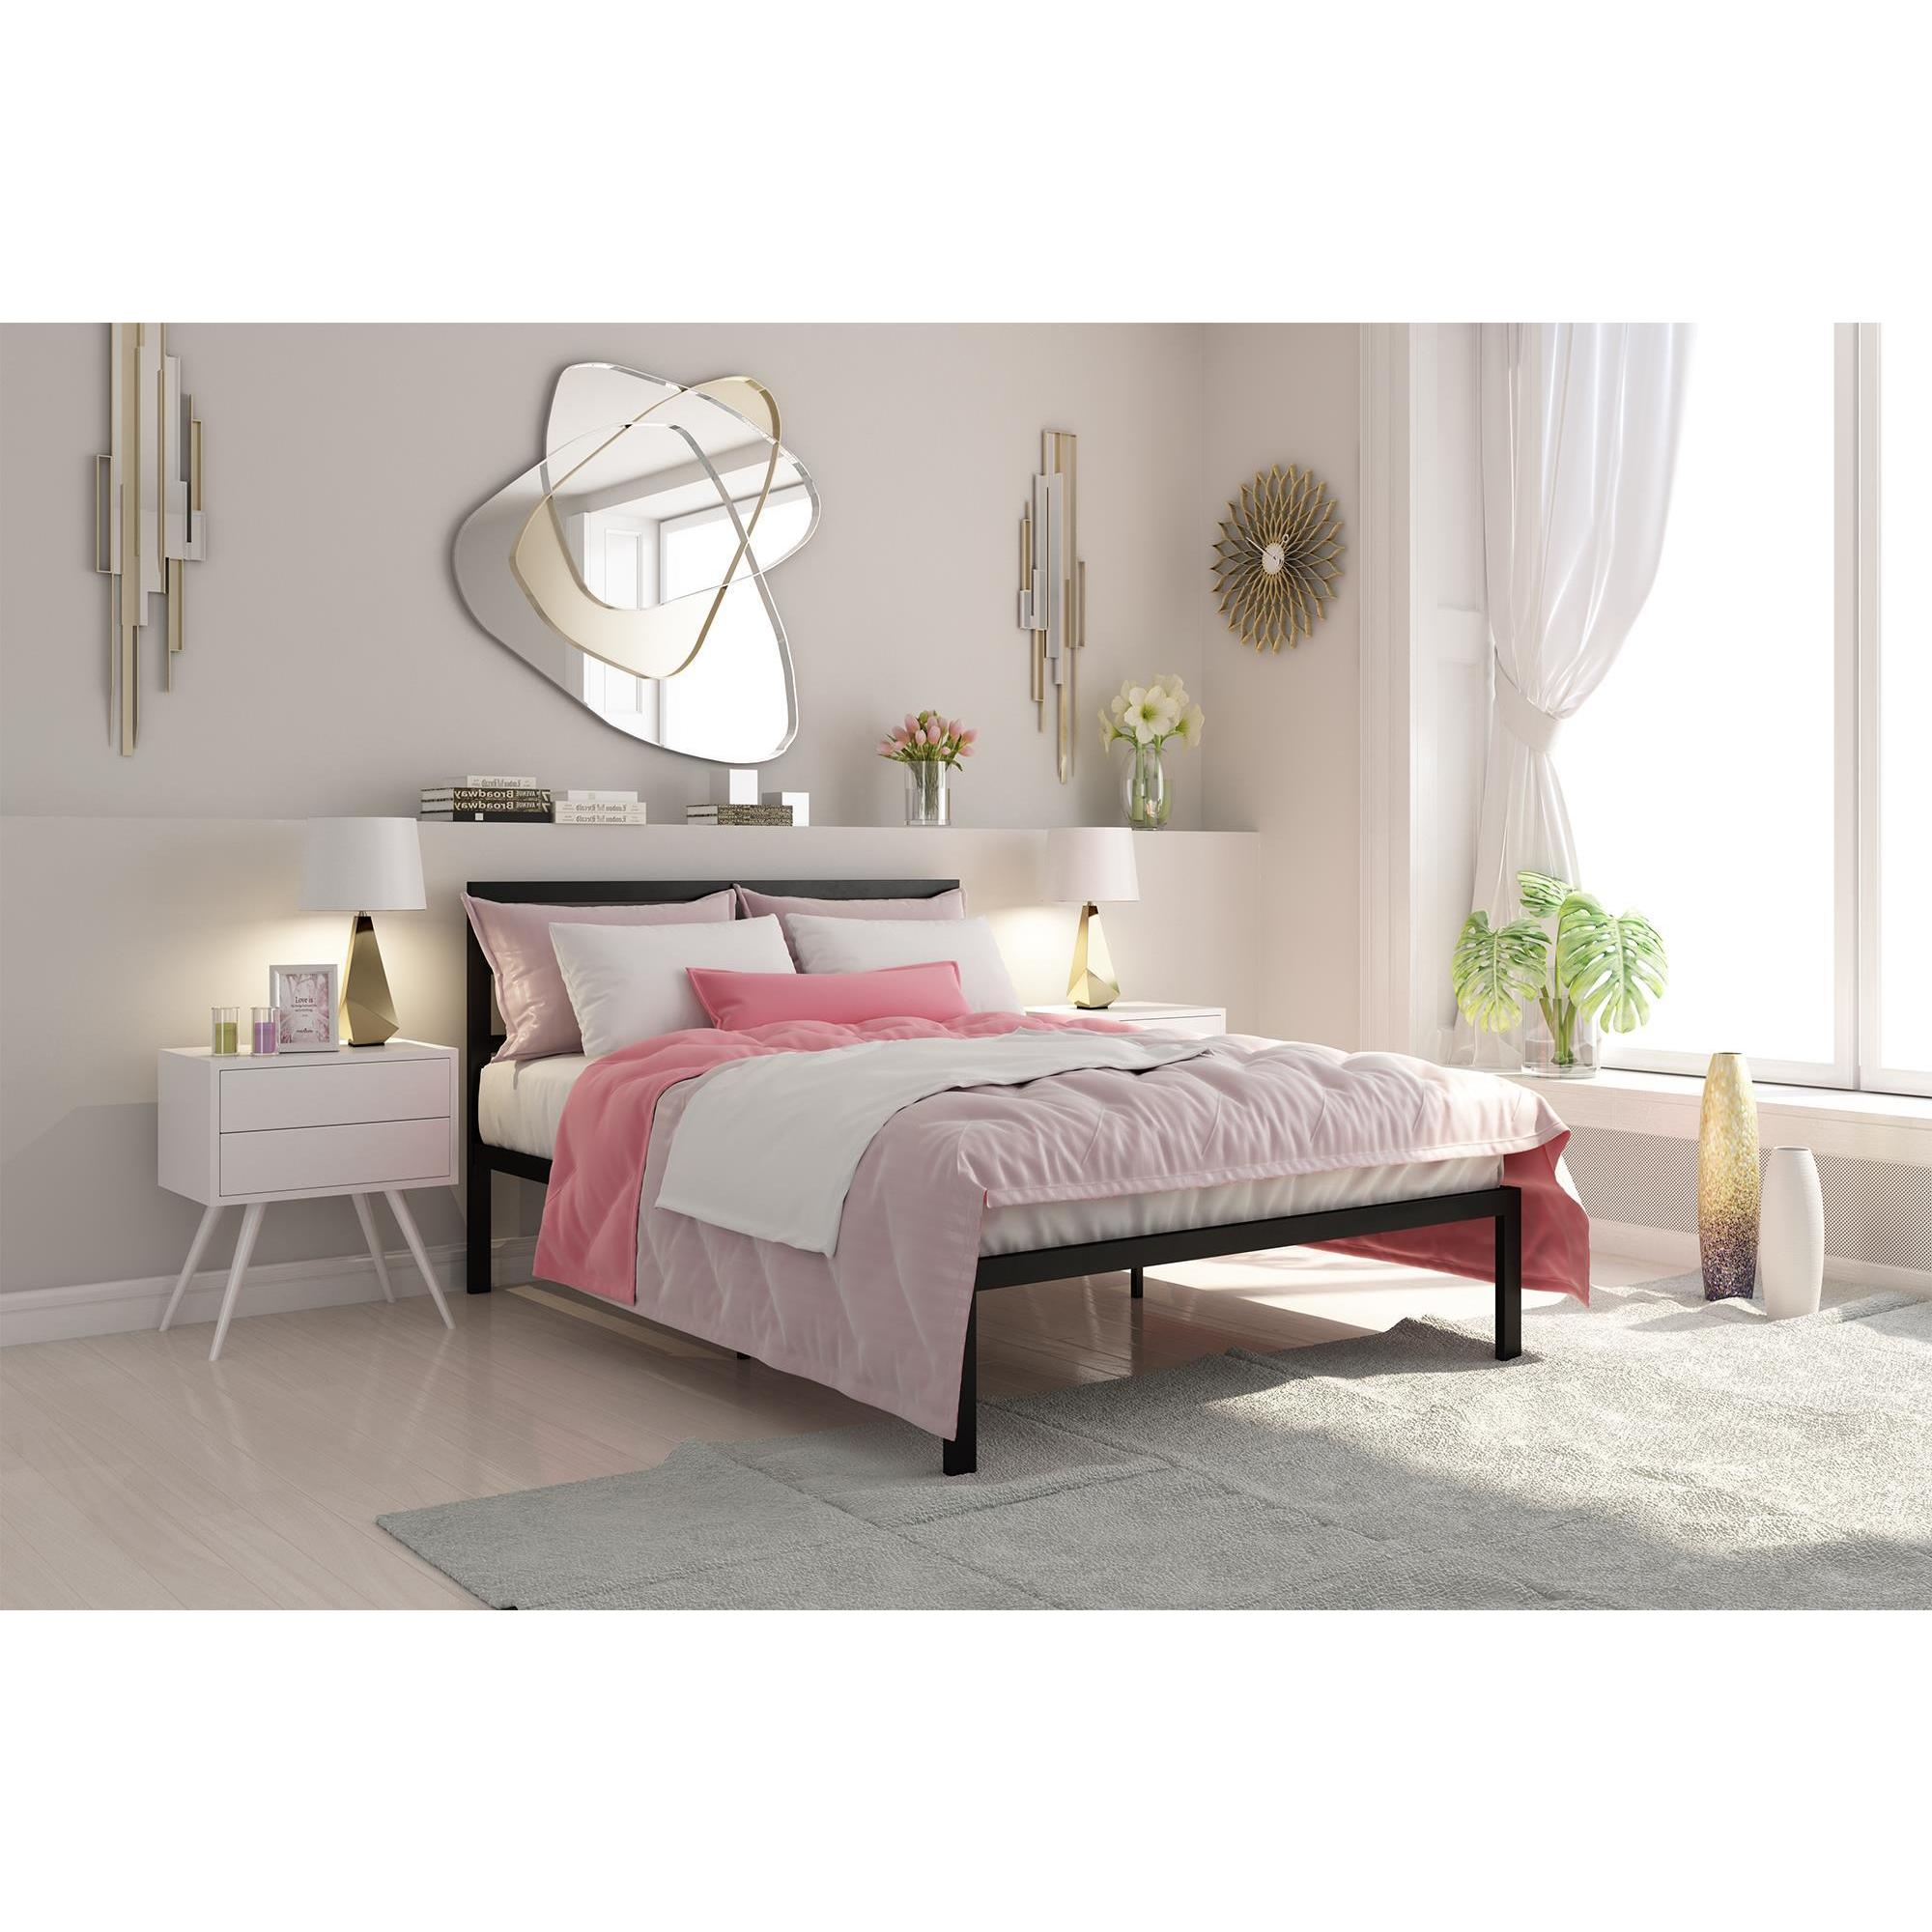 Shop DHP Signature Sleep Queen-size Platform Bed with Headboard ...